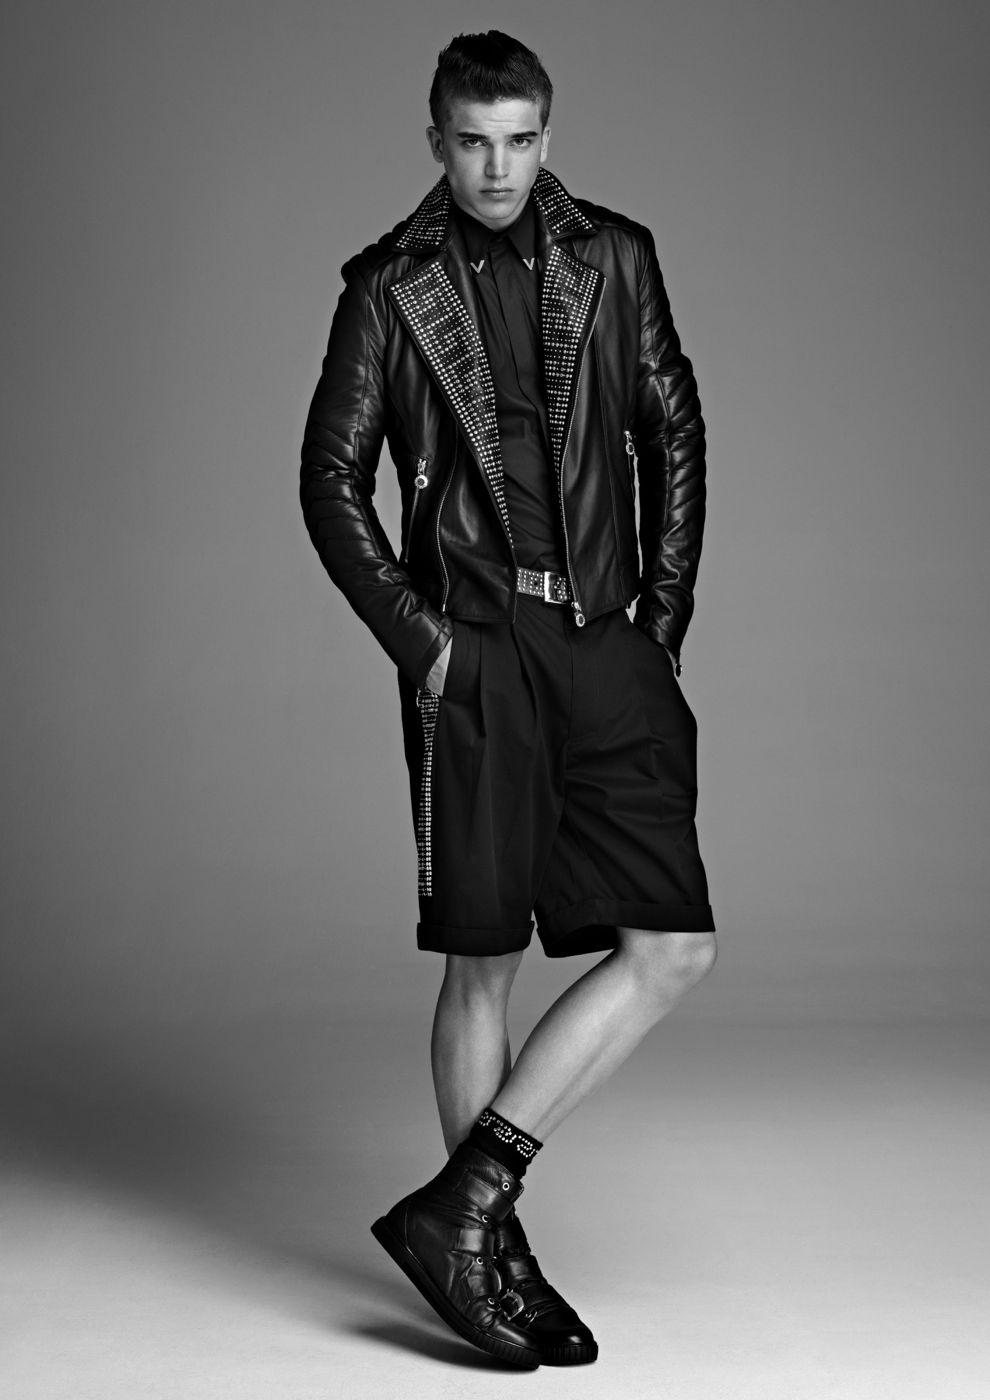 Versace for H&M Men's collection